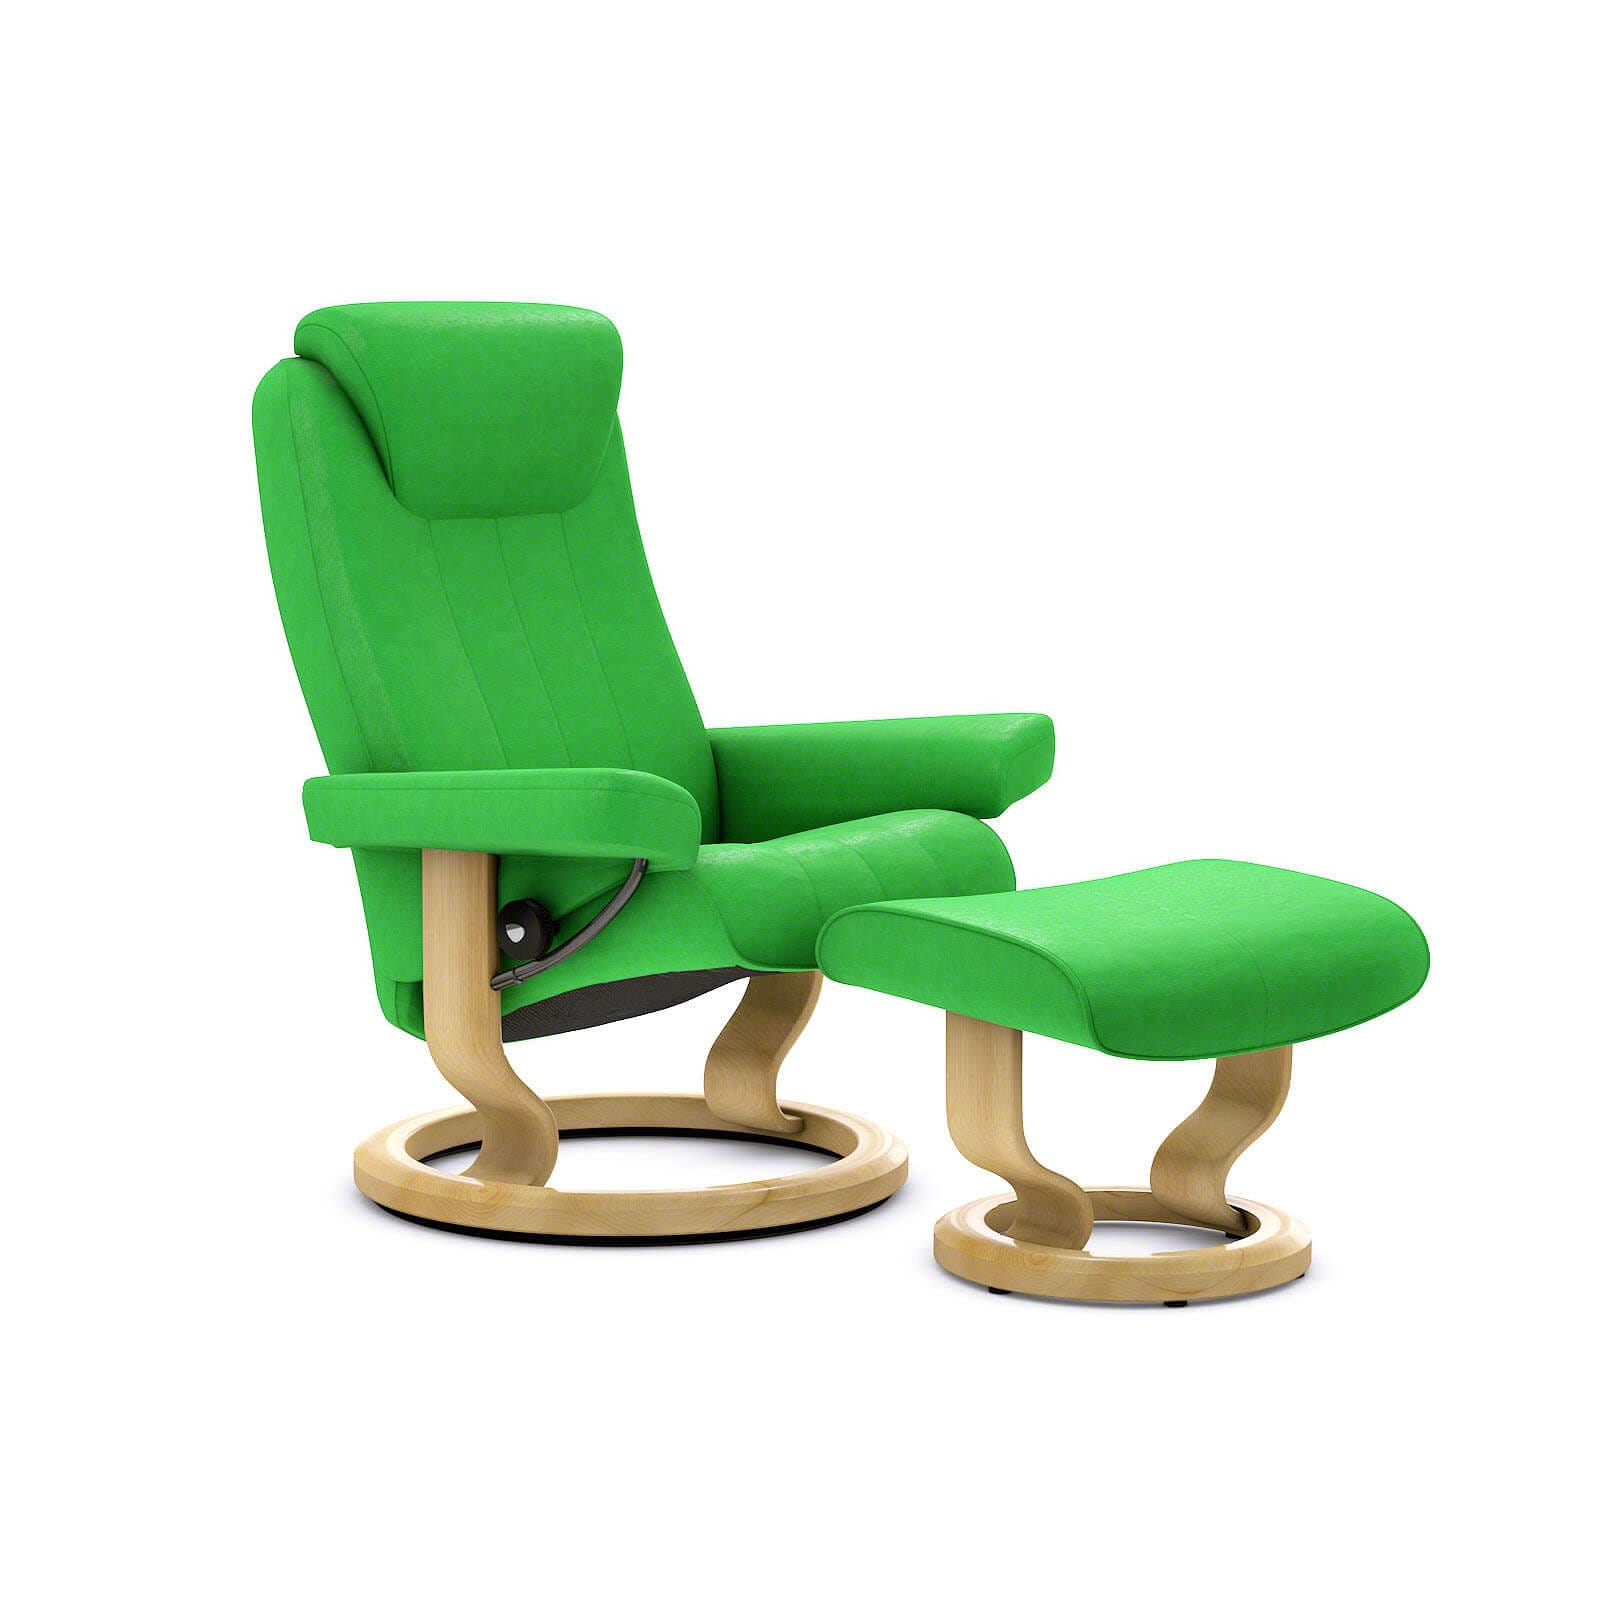 Summer Casual Geflecht Relax-sessel Stressless Bliss Sessel Paloma Summer Green Mit Hocker